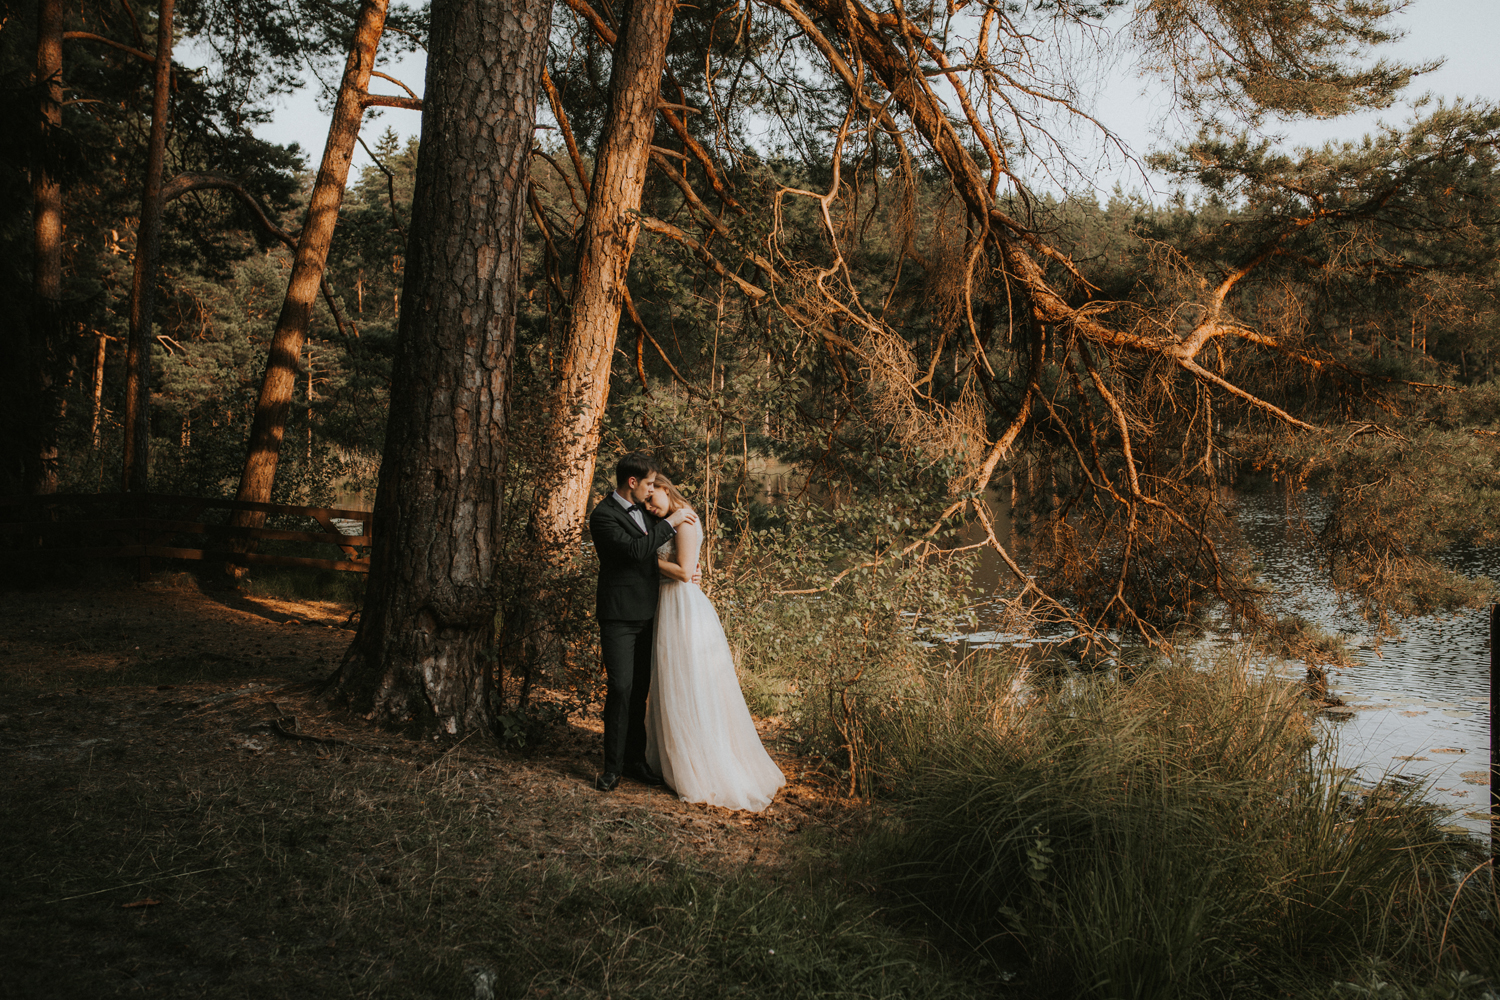 weddingphotograher_klaudia_rafal_nationalpark_441.jpg